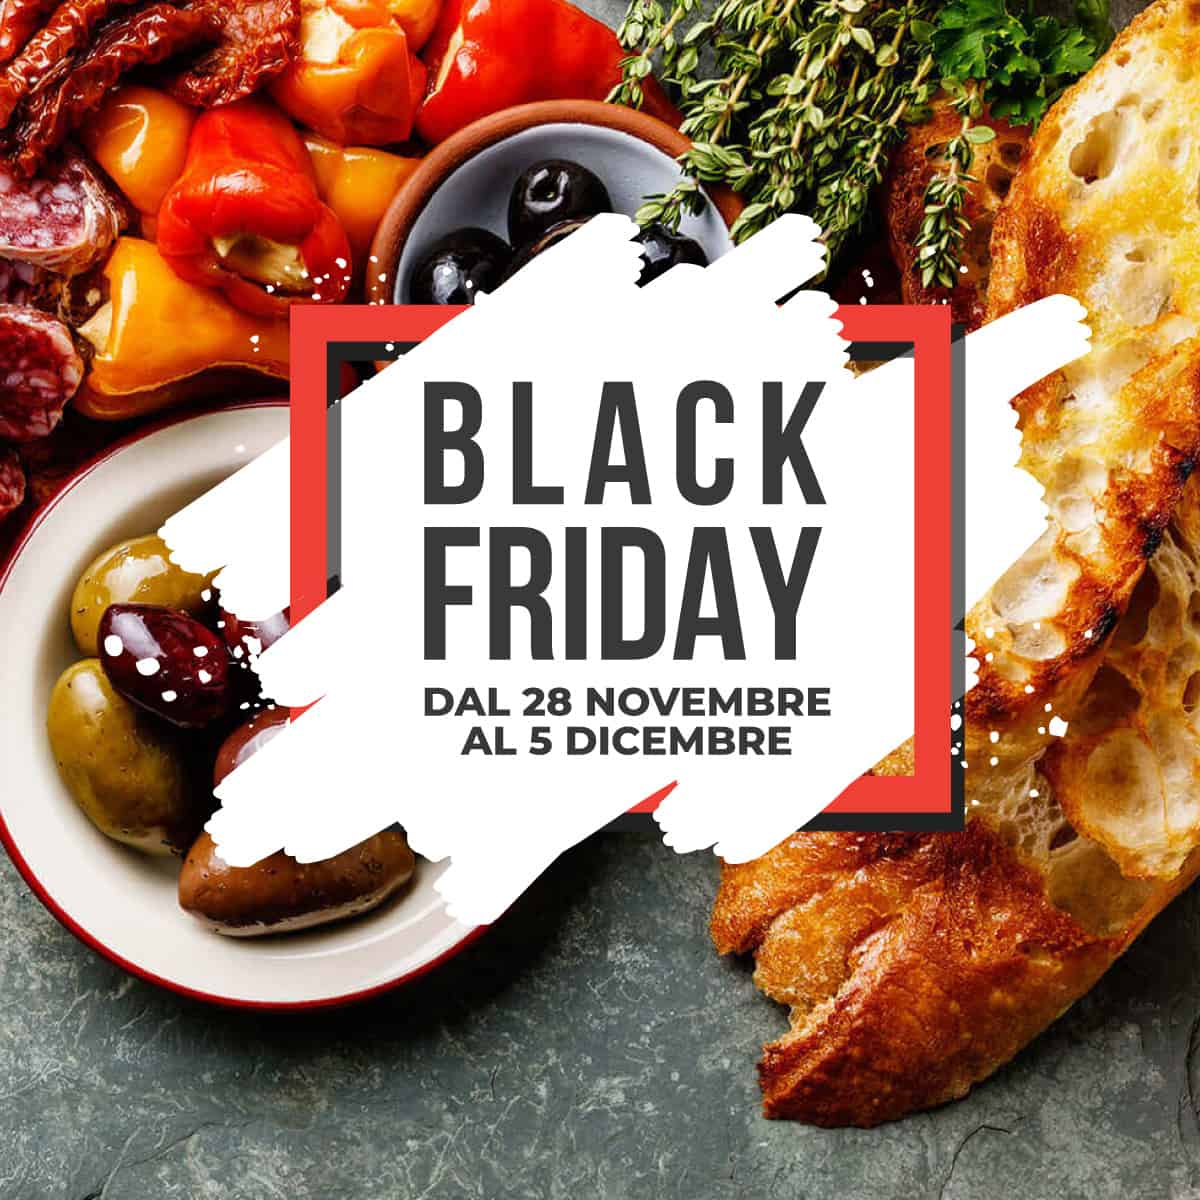 blackfriday19 Tutte le news